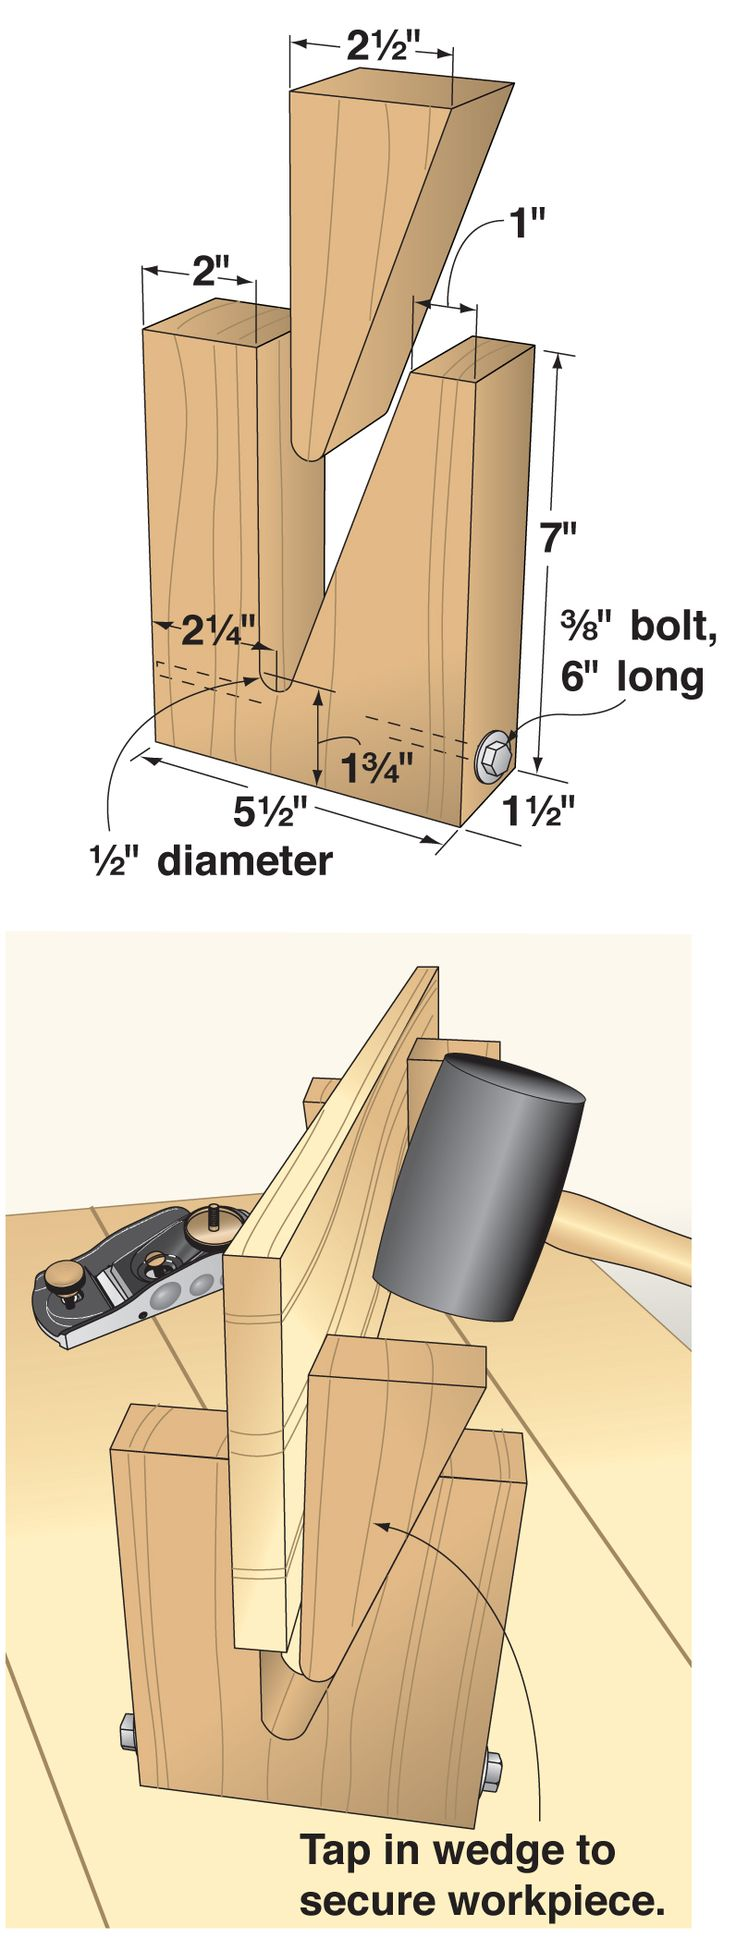 """""""For those occasions when you need a stable way to hold a board on its edge, turn to a tool that's as old as woodworking itself—the wedge. I fashioned the wedge stands shown at right from scraps of 2x6 and a 3/8x6"""" bolt and nut. To make the stand, cut a 7""""-long chunk from the 2x6 and drill a 1/2"""" hole centere d 2 1/4"""" from the edge and 1 3/4"""" up from the bottom. This hole reduces the likelihood of the stand splitting once the wedge is cut out. Mark the cutlines for the wedge as shown in the…"""